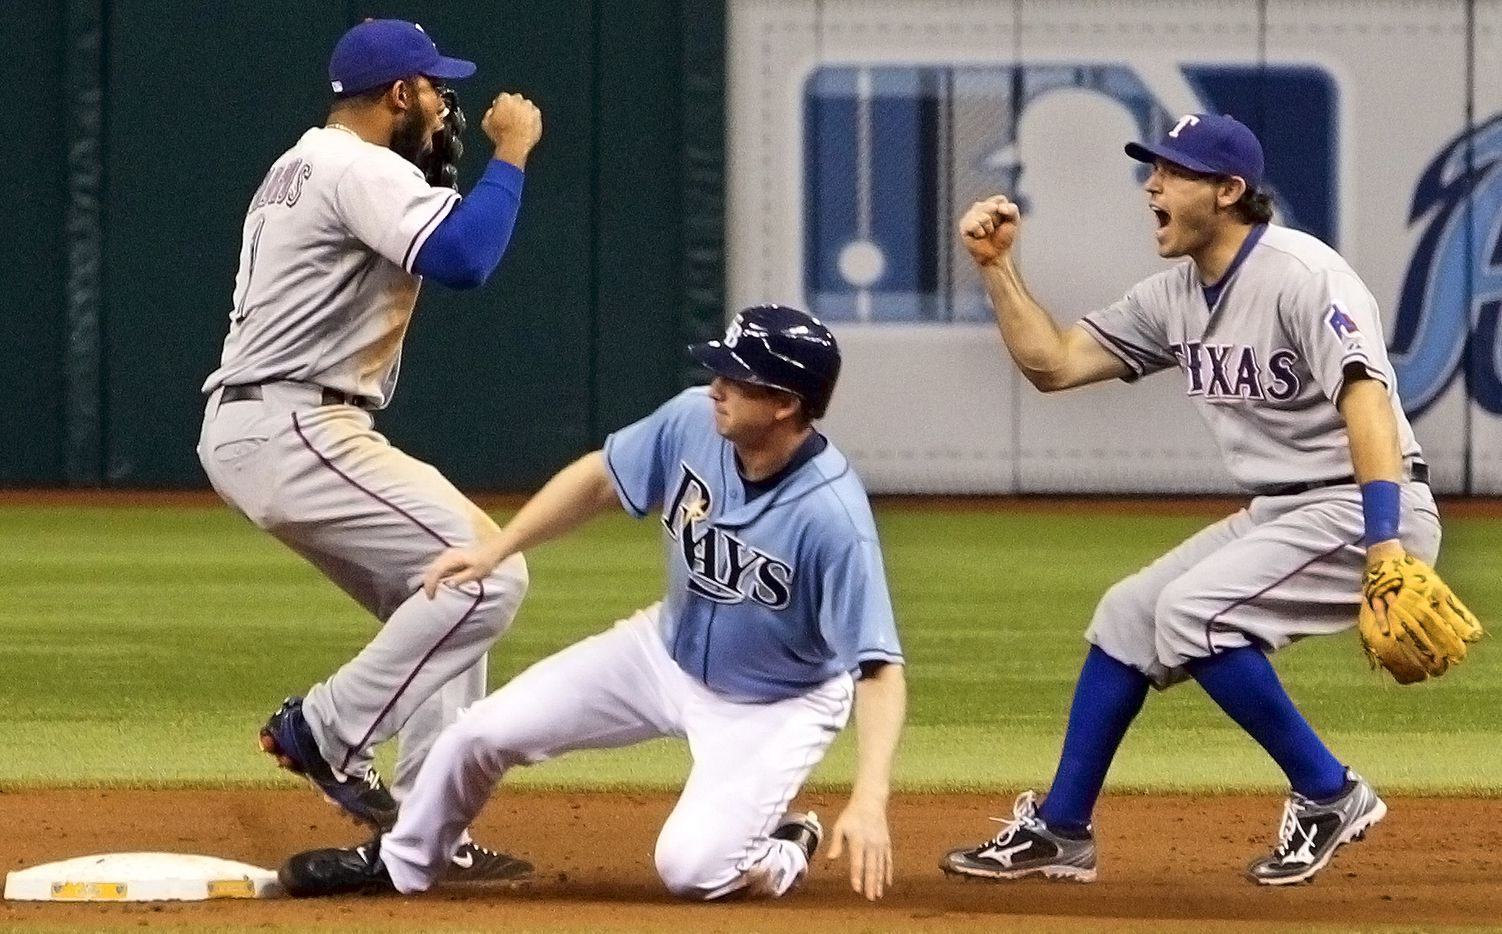 Texas SS Elvis Andrus, left, and 2B Ian Kinsler, right, celebrate the final out at second as Tampa pinch runner Elliot Johnson slides in on the final play in Texas' 4-3 ALDS-clinching win during Game 4 of the American League Division Series between the Texas Rangers and the Tampa Bay Rays on Tuesday, October 4, 2011 at Tropicana Field in St. Petersburg, FL. (Louis DeLuca/The Dallas Morning News)